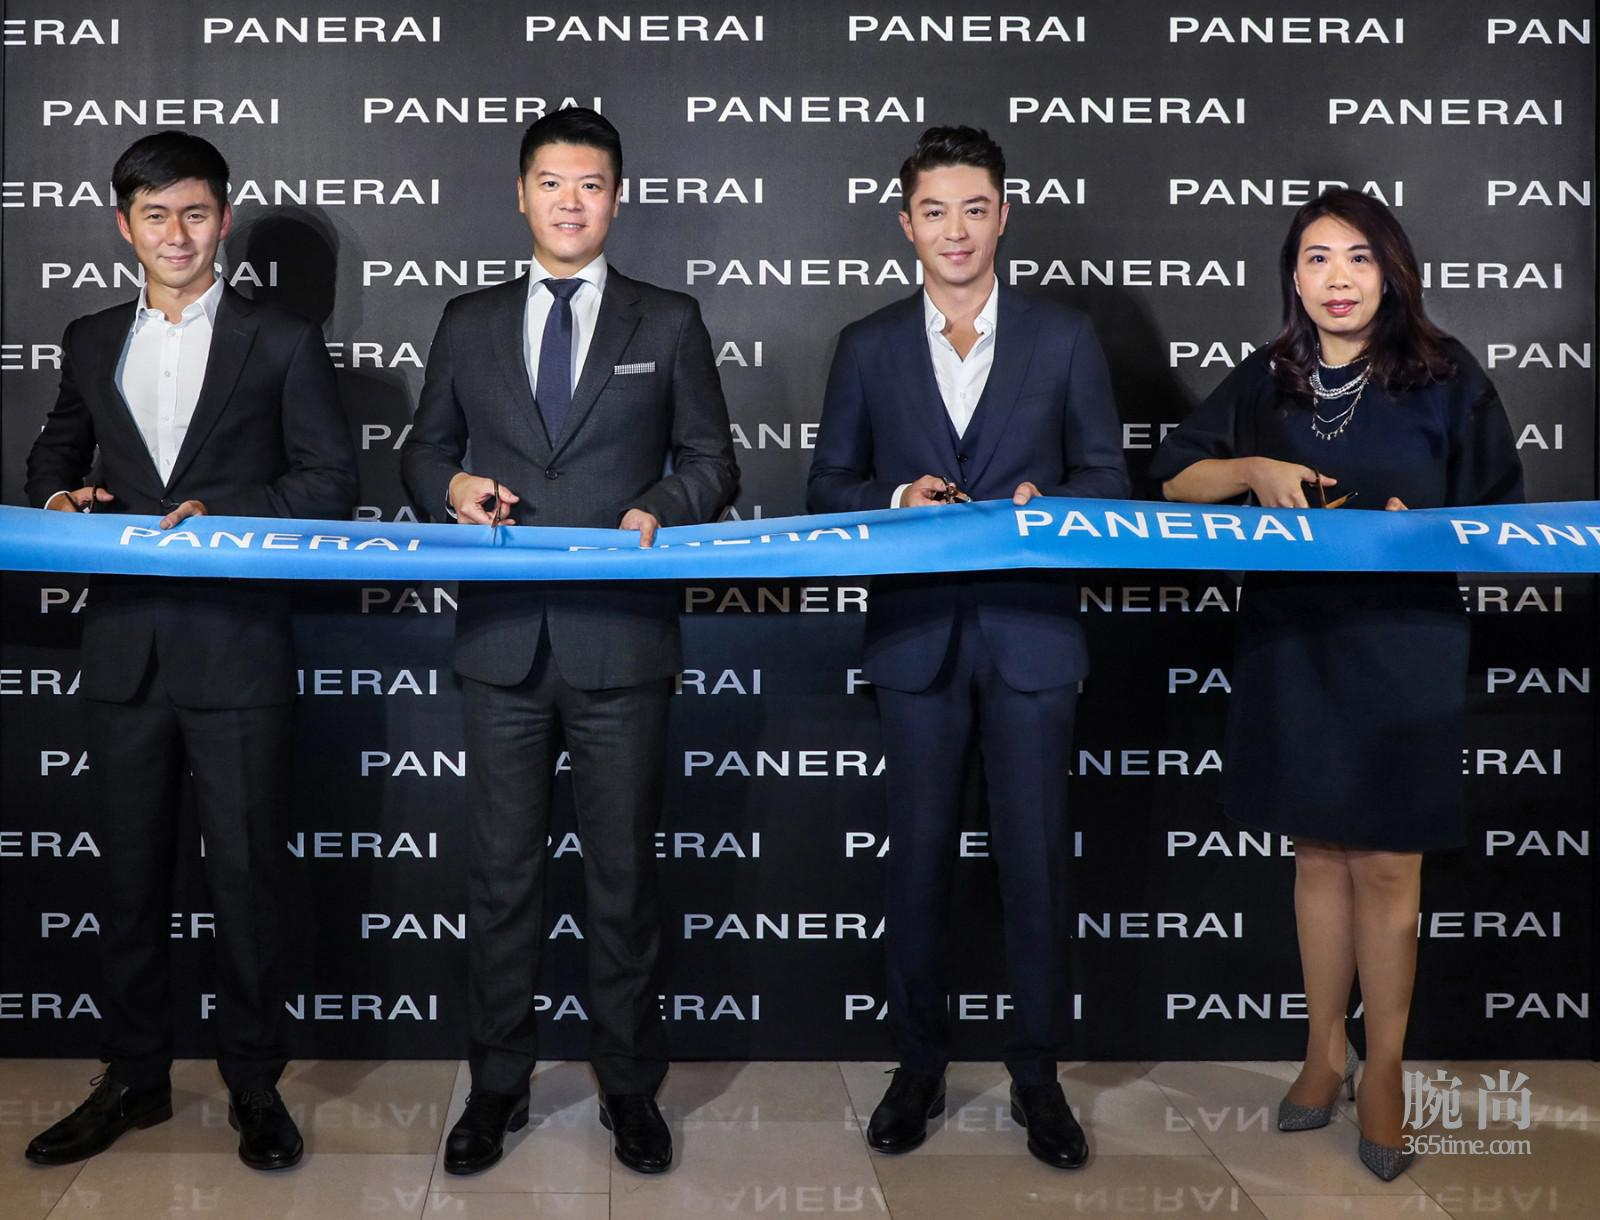 OFFICINE-PANERAI---SHANGHAI-IAPM-ROADSHOW---RIBBON-CUTTING.jpg